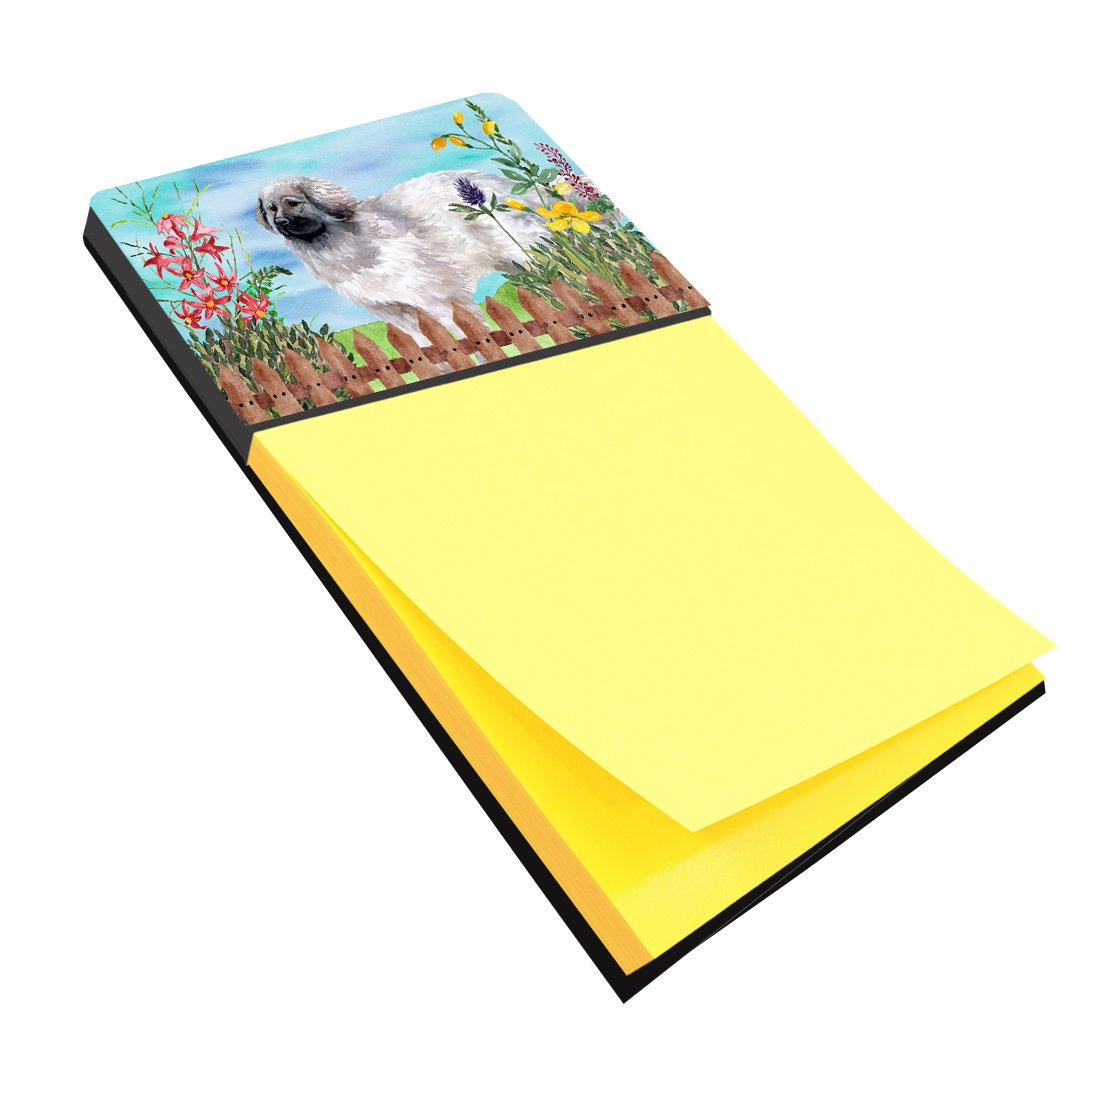 Moscow Watchdog Spring Sticky Note Holder CK1235SN by Caroline's Treasures